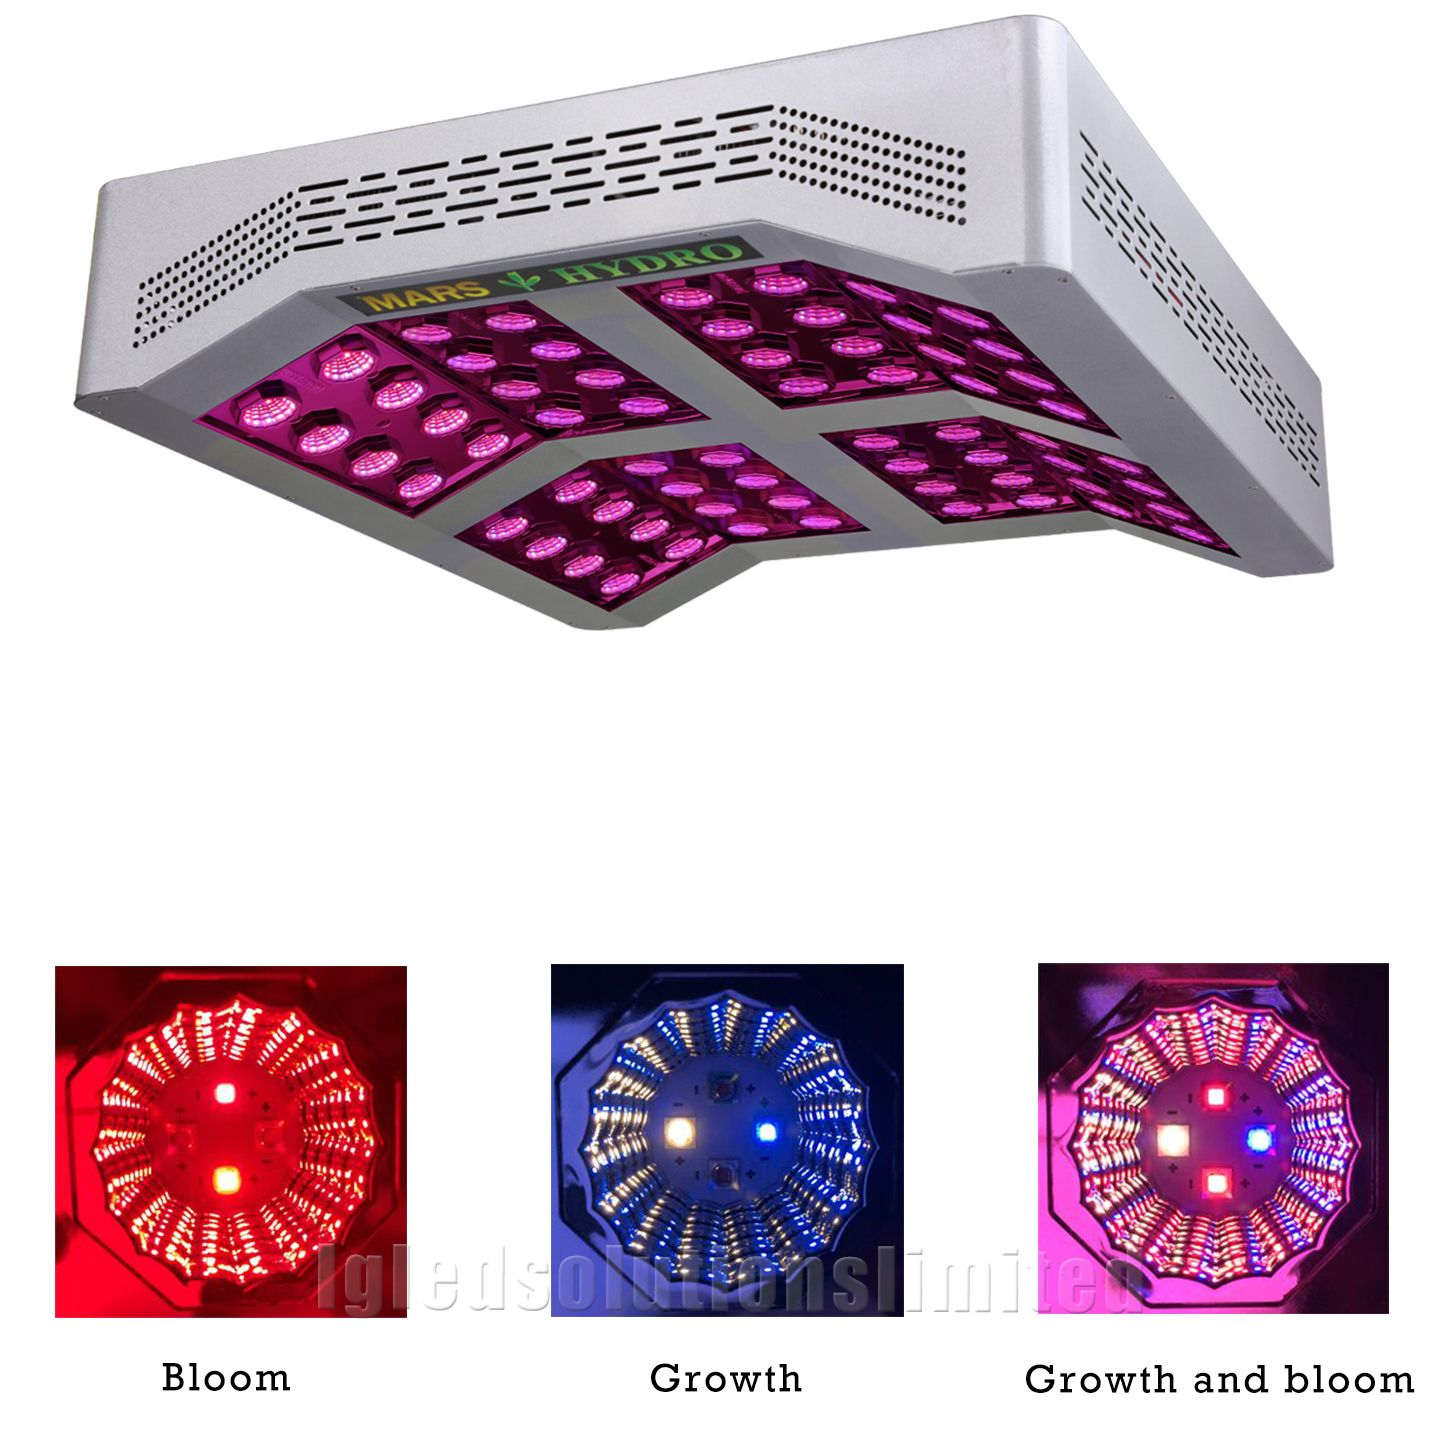 Mars Pro Ii Cree 256 Led Grow Light Hydroponics Best Veg Flower Home Indoor Garden Plant True 660w Wit Led Grow Lights Led Grow Lights Hydroponics Hydroponics